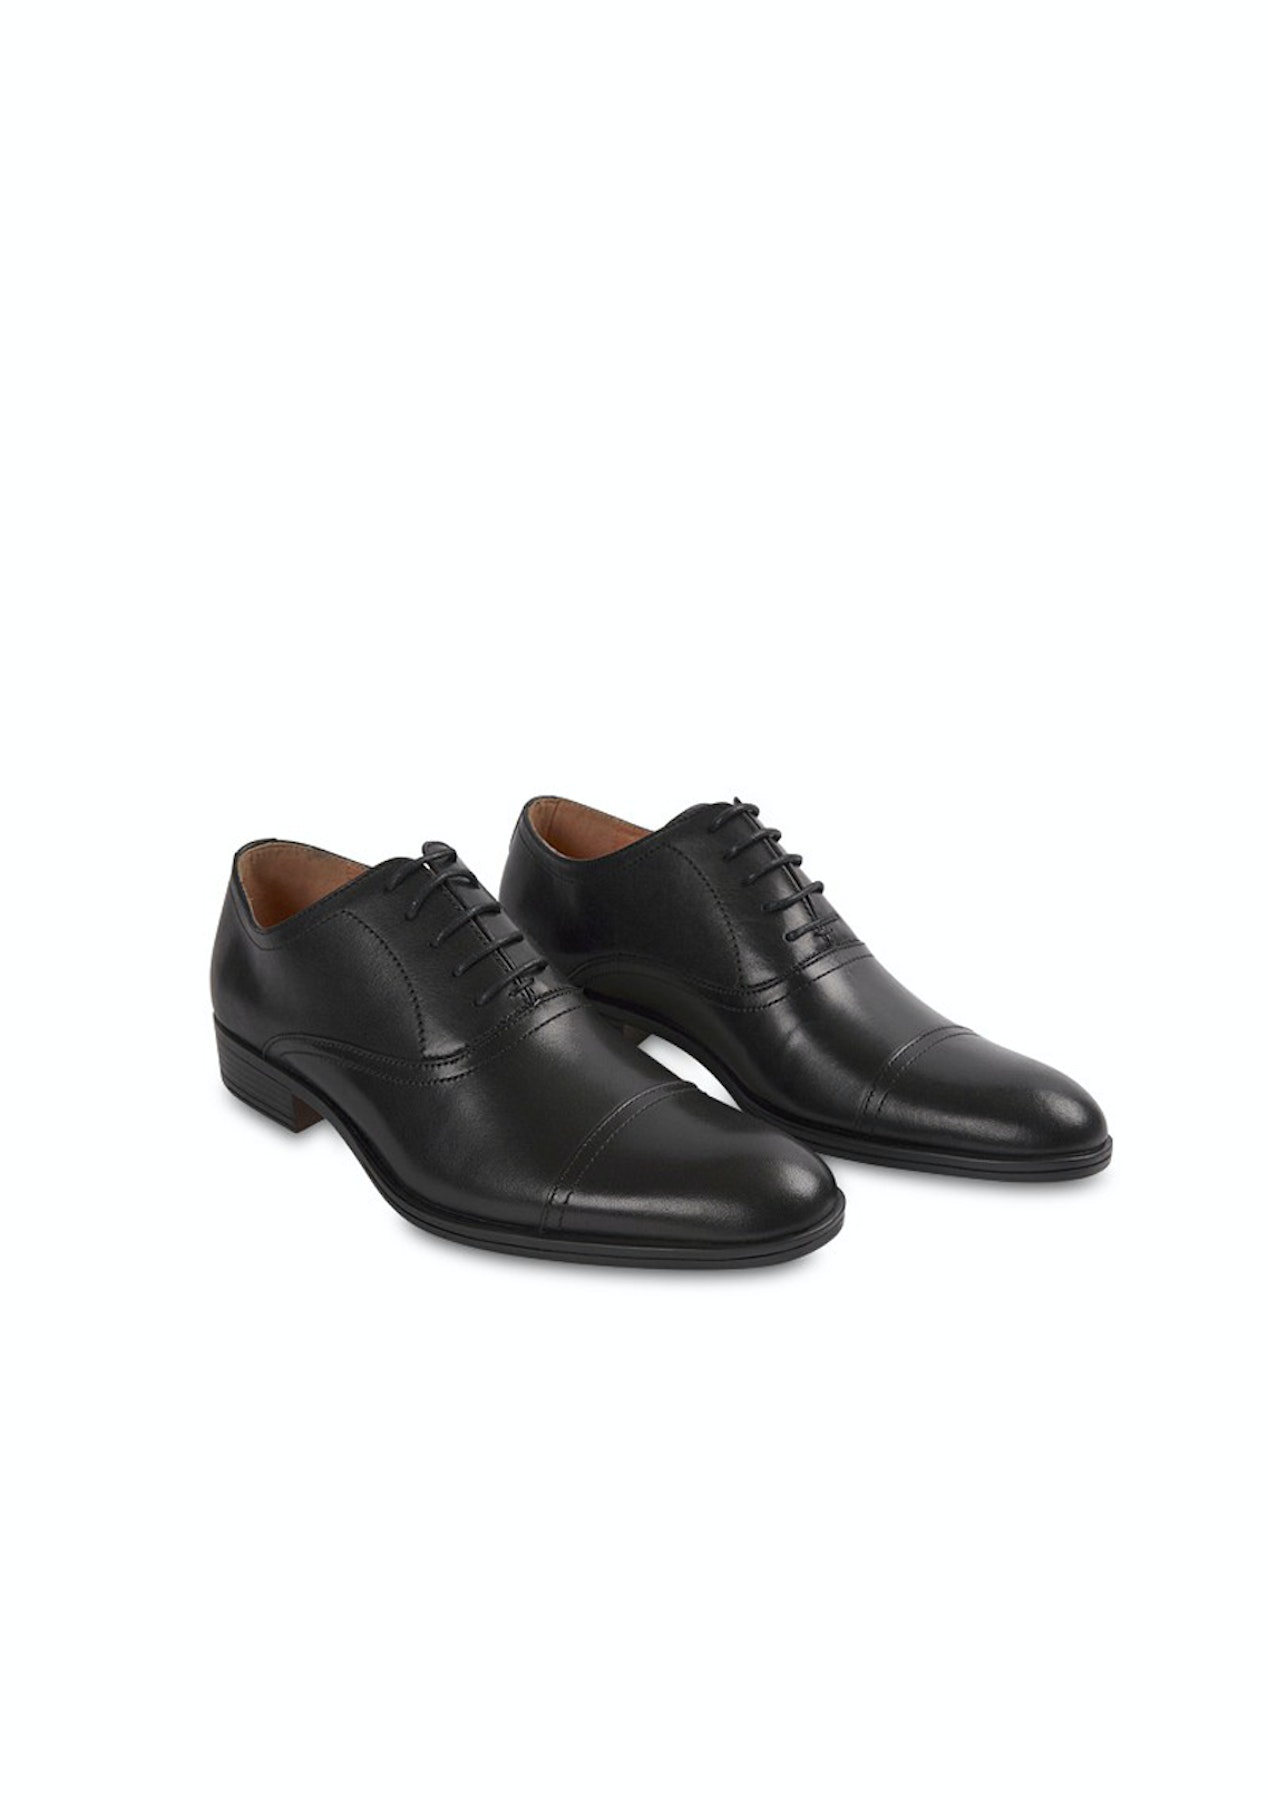 5974209c4 Jeff Banks Accolade - Performance Oxford - Black - Jeff Banks Mens Footwear    Accessories - Onceit